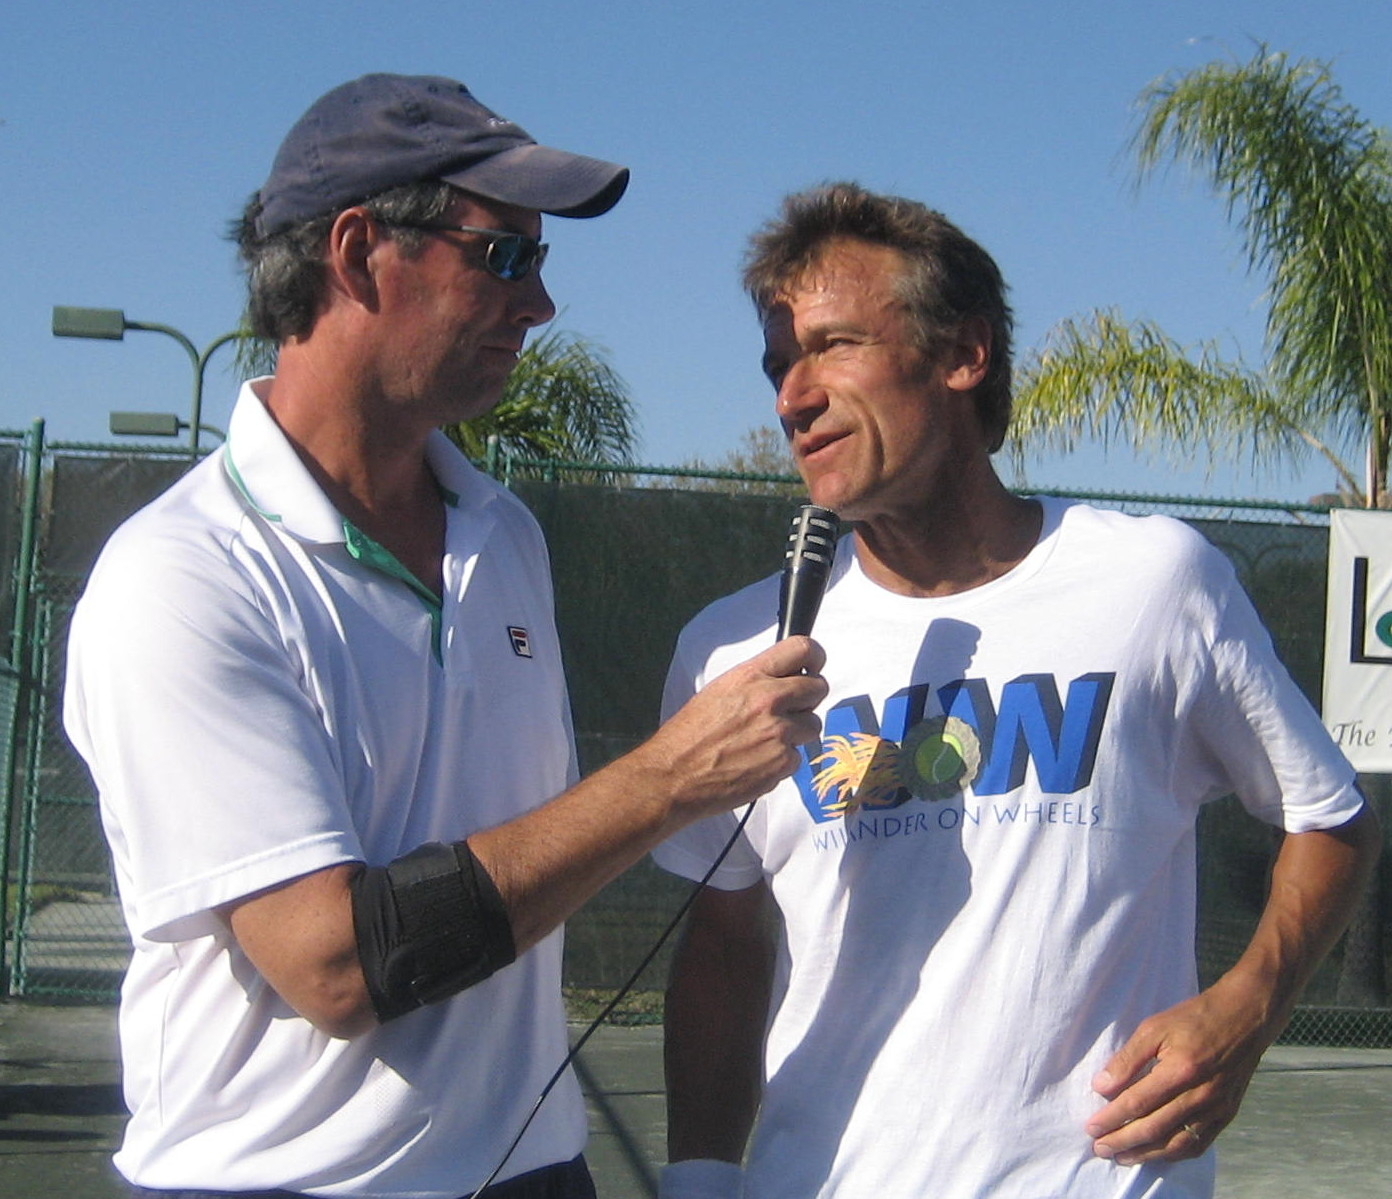 Ray Collins interviews tennis legend Mats Wilander.